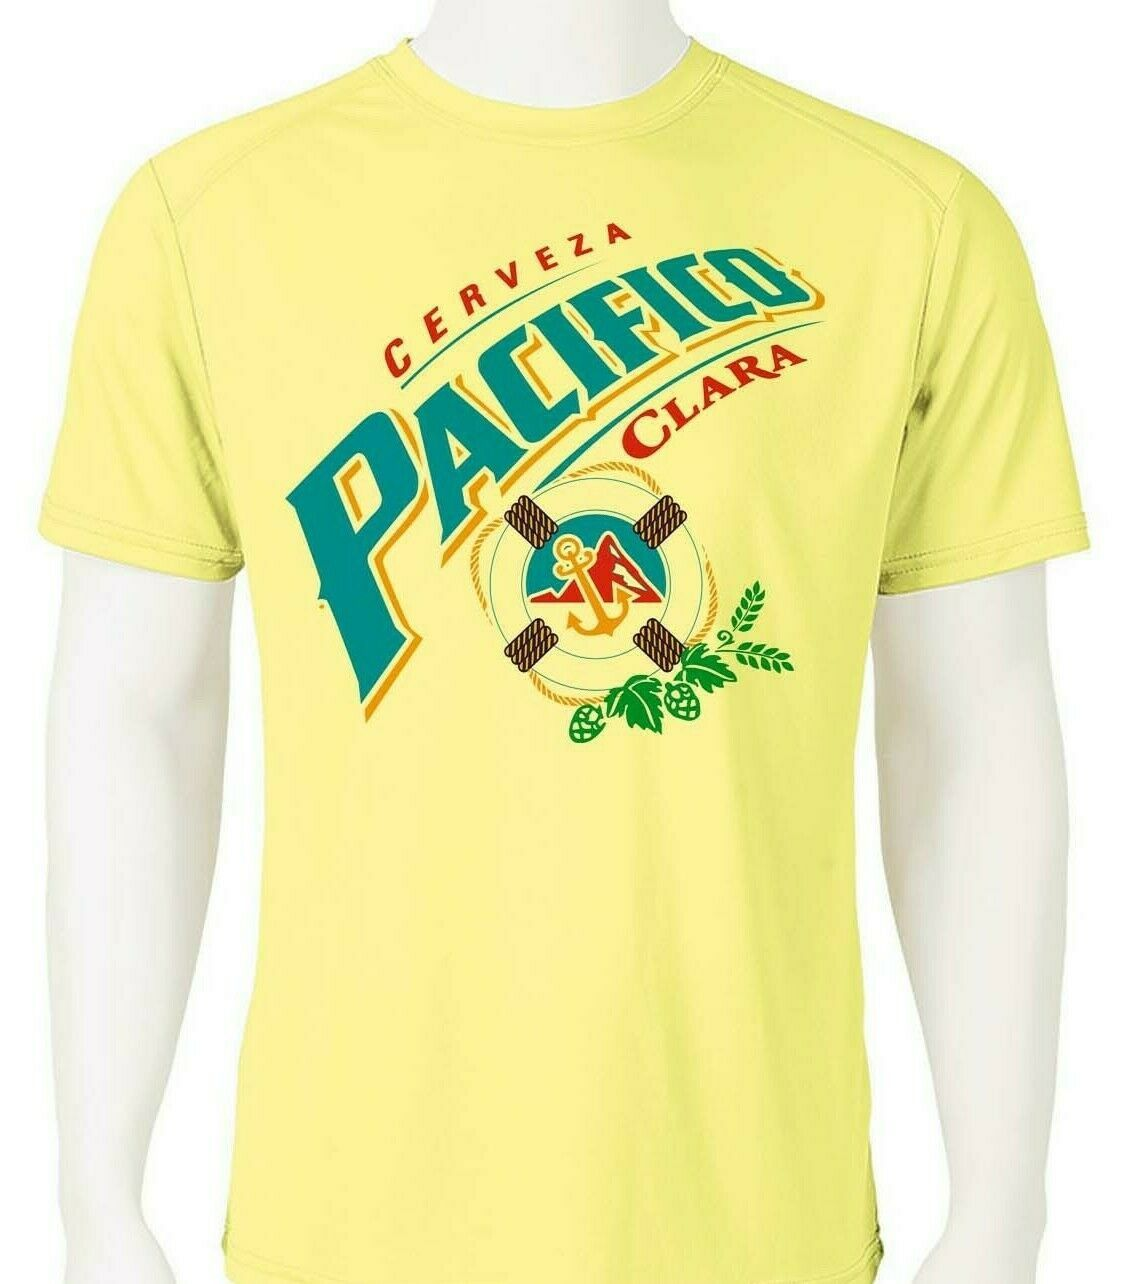 Pacifico Dri Fit graphic Tshirt moisture wicking graphic printed sun shirt SPF